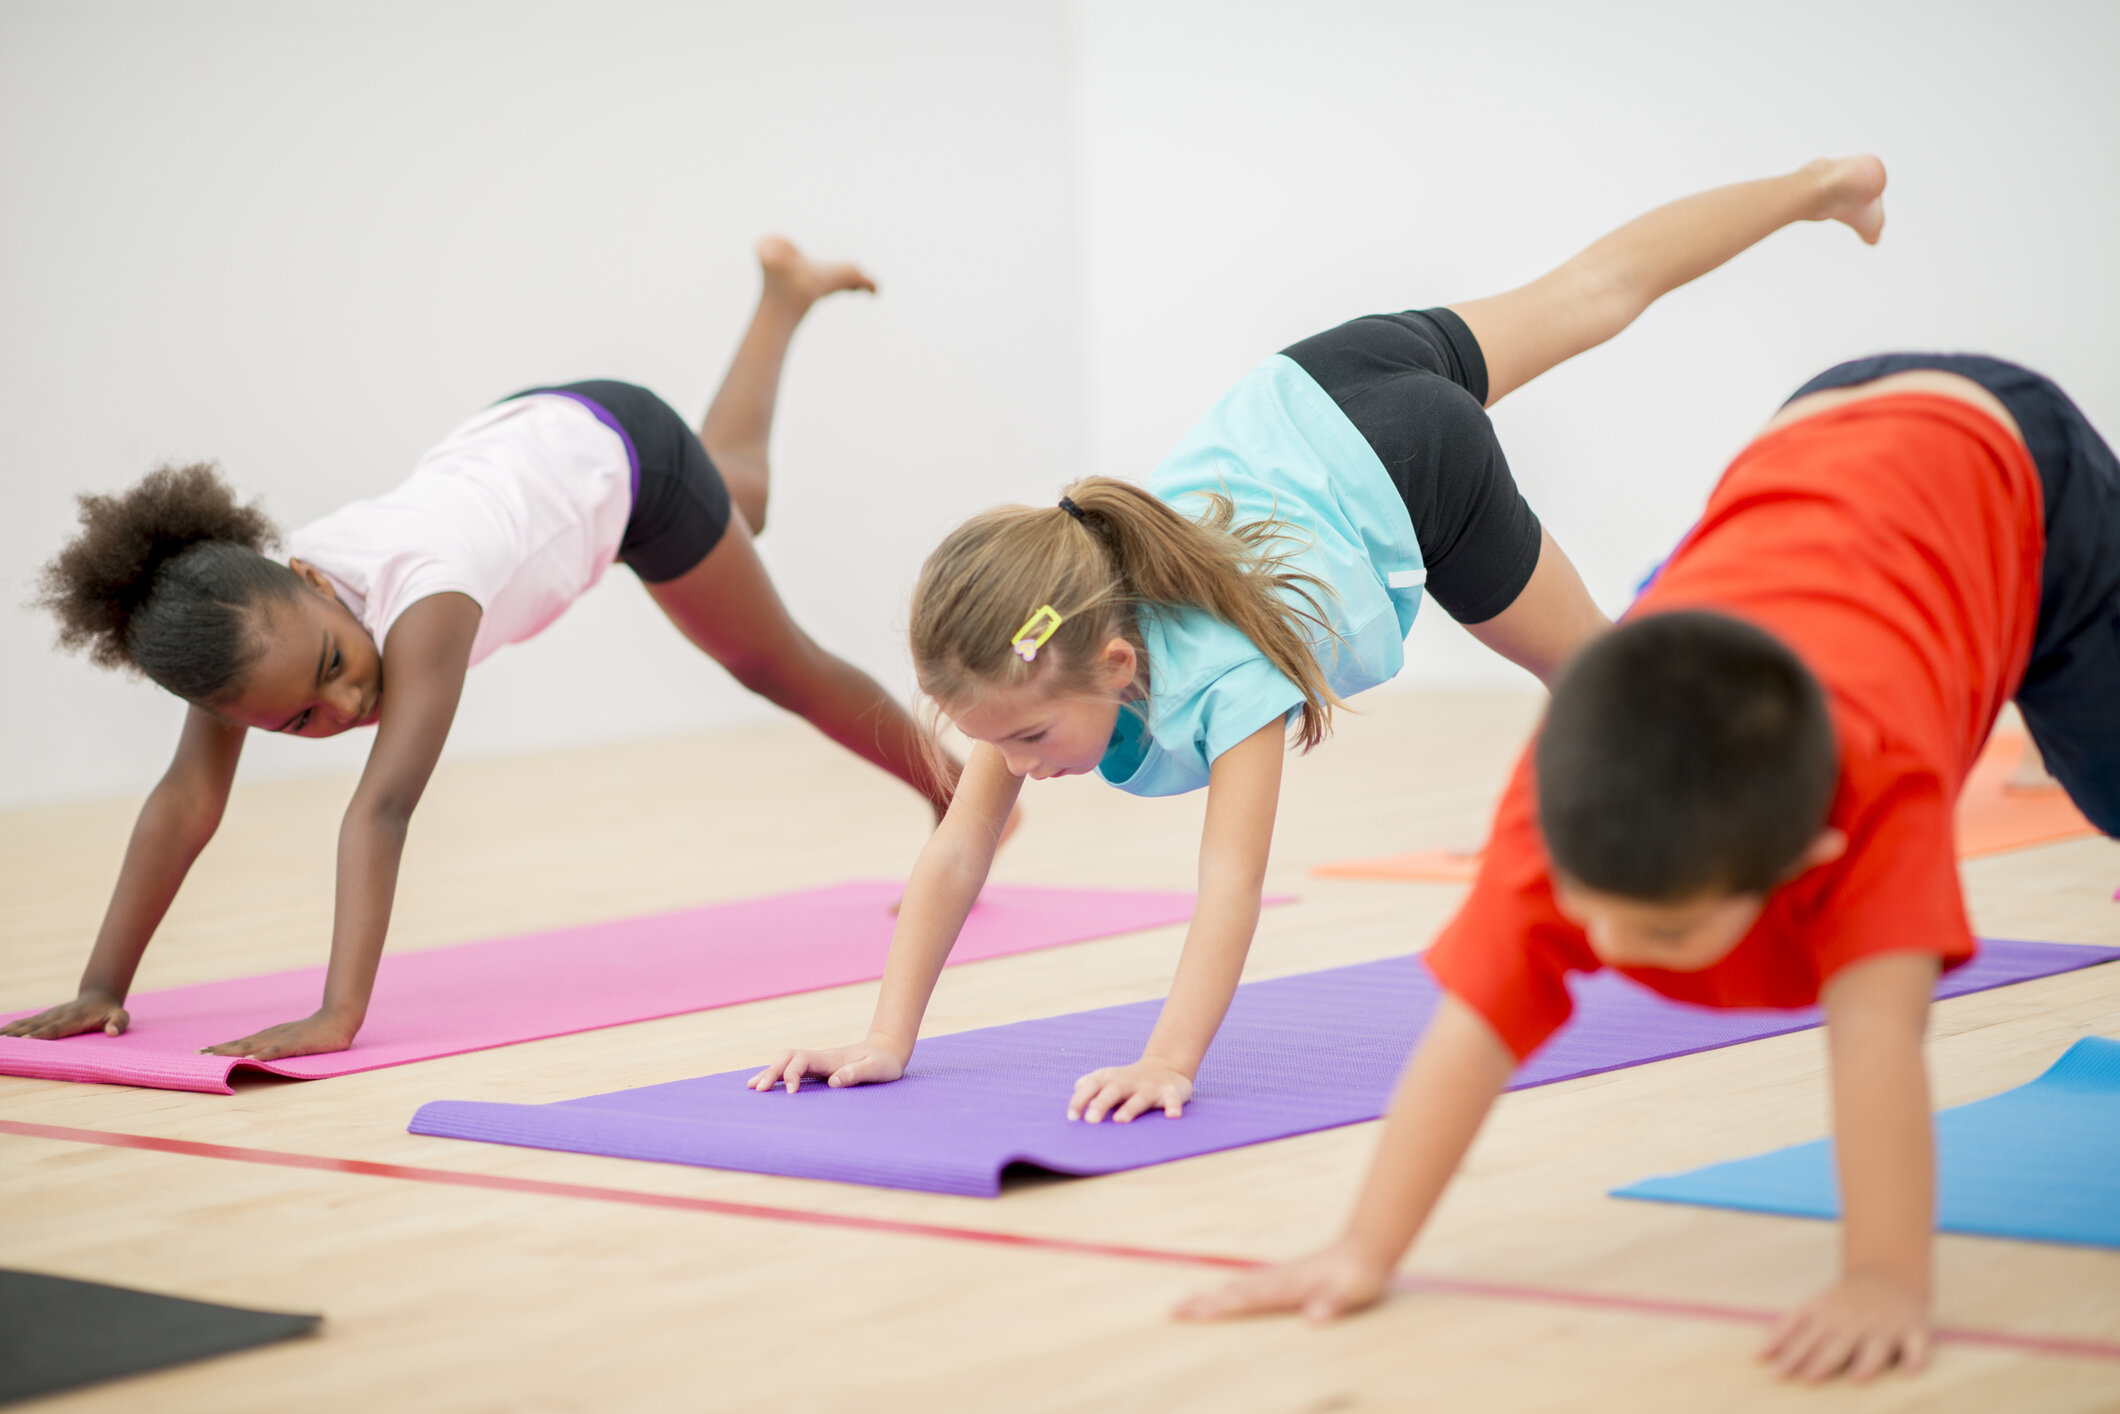 16:00 - 17:00 - Children well-being class inspired by yoga and mindfulness. With Robin Watkins - DavisCLICK FOR MORE INFO & TICKETS >>